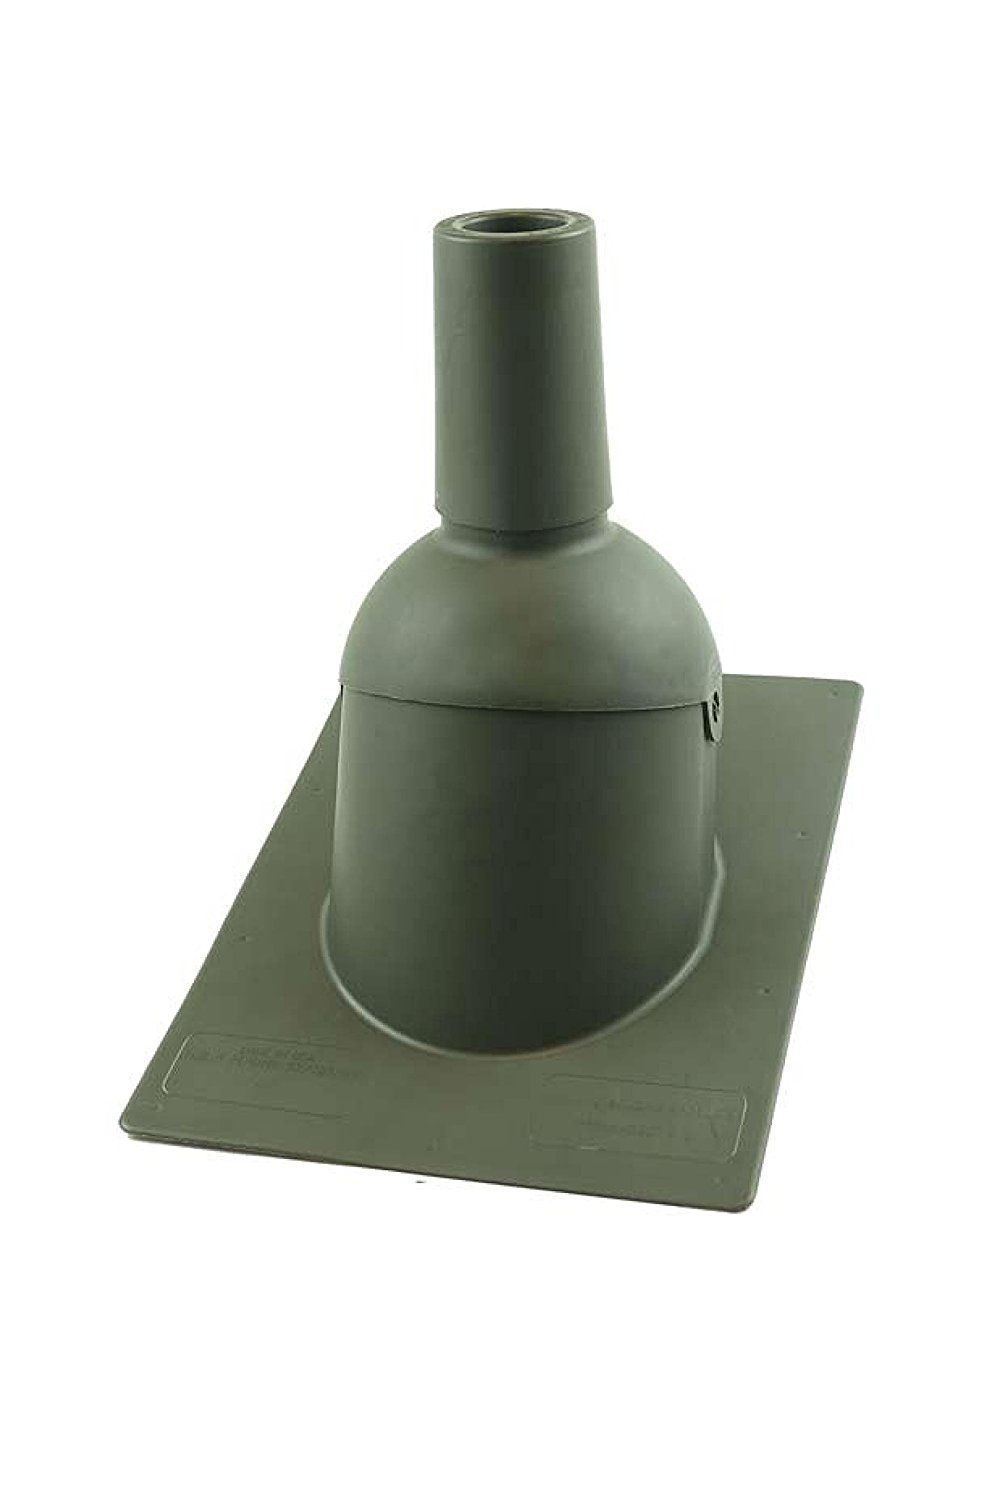 Perma Boot 312 2 Ww New Oem Plumbing Vent Boot For New Construction 2 Inch Fits 2 Inch Pvc Pipes Weathered Wo Plumbing Vent How To Install Gutters Roof Vents